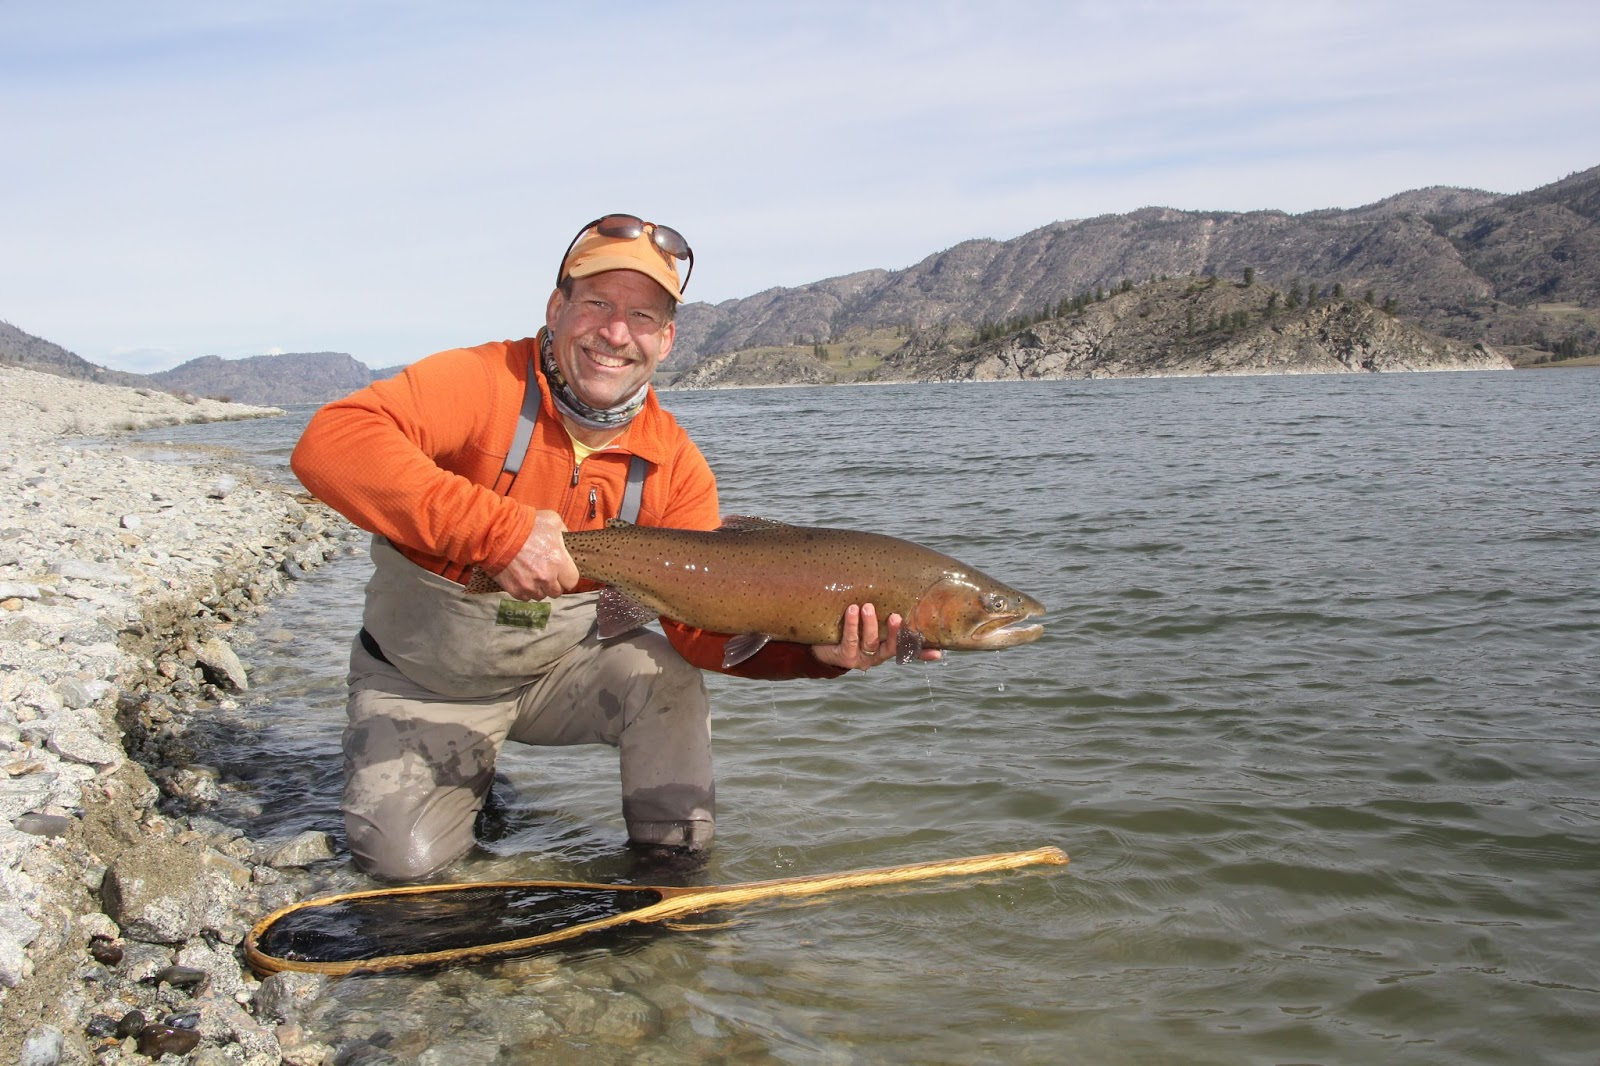 Central alberta fly tying club lahontan cutthroat trout for Fly fishing washington state